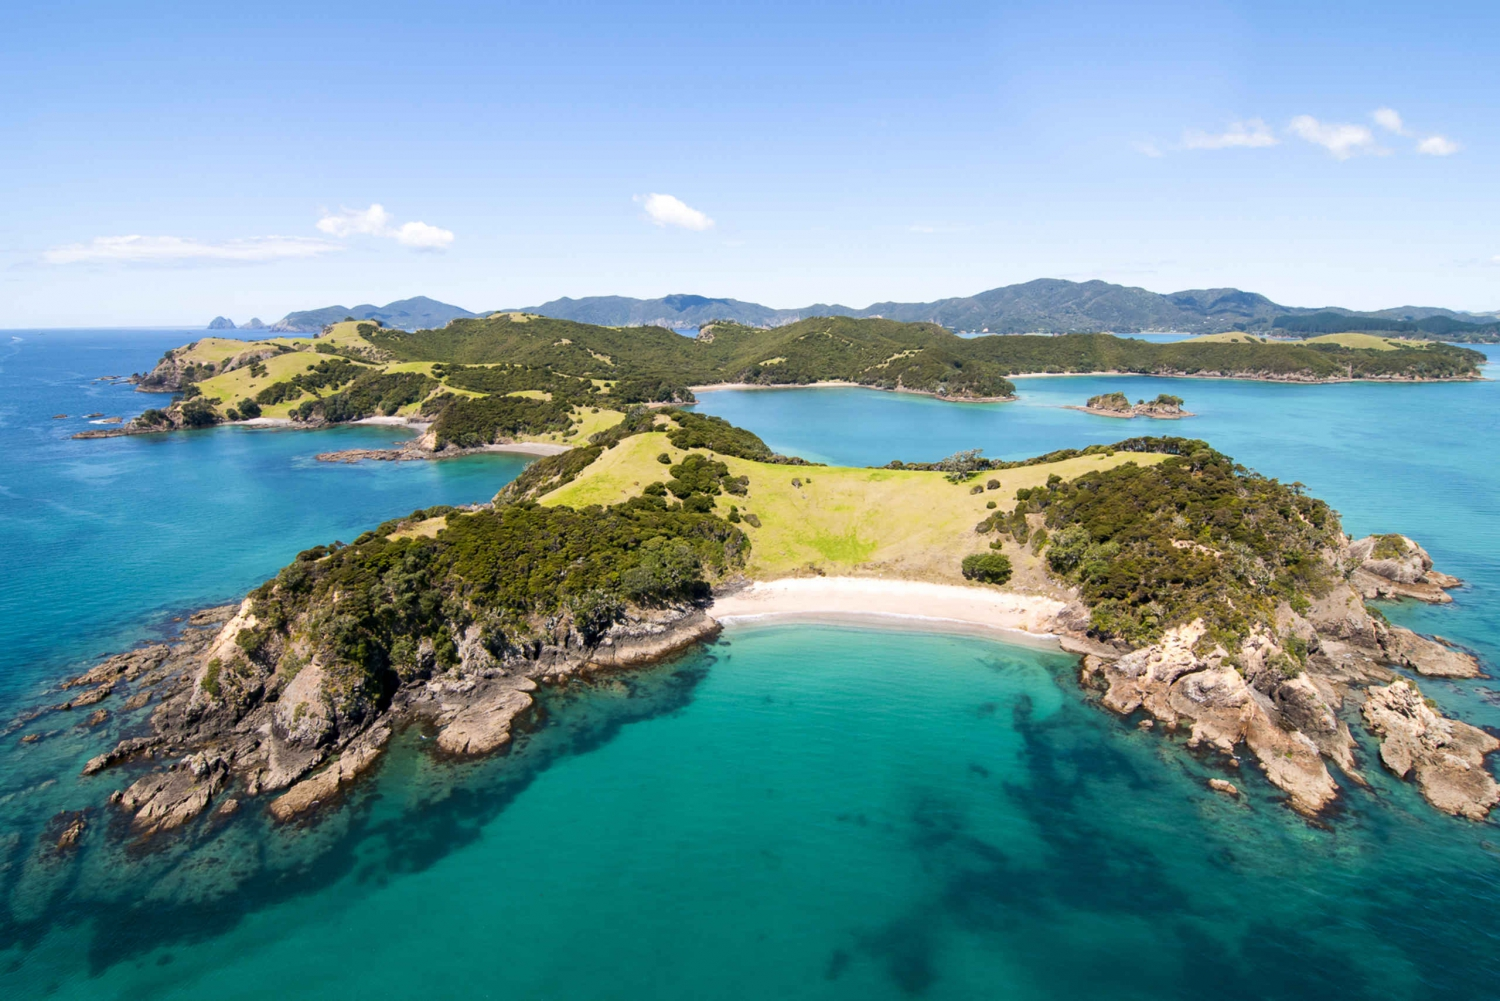 One-Way Bus Transfer to the Bay of Islands